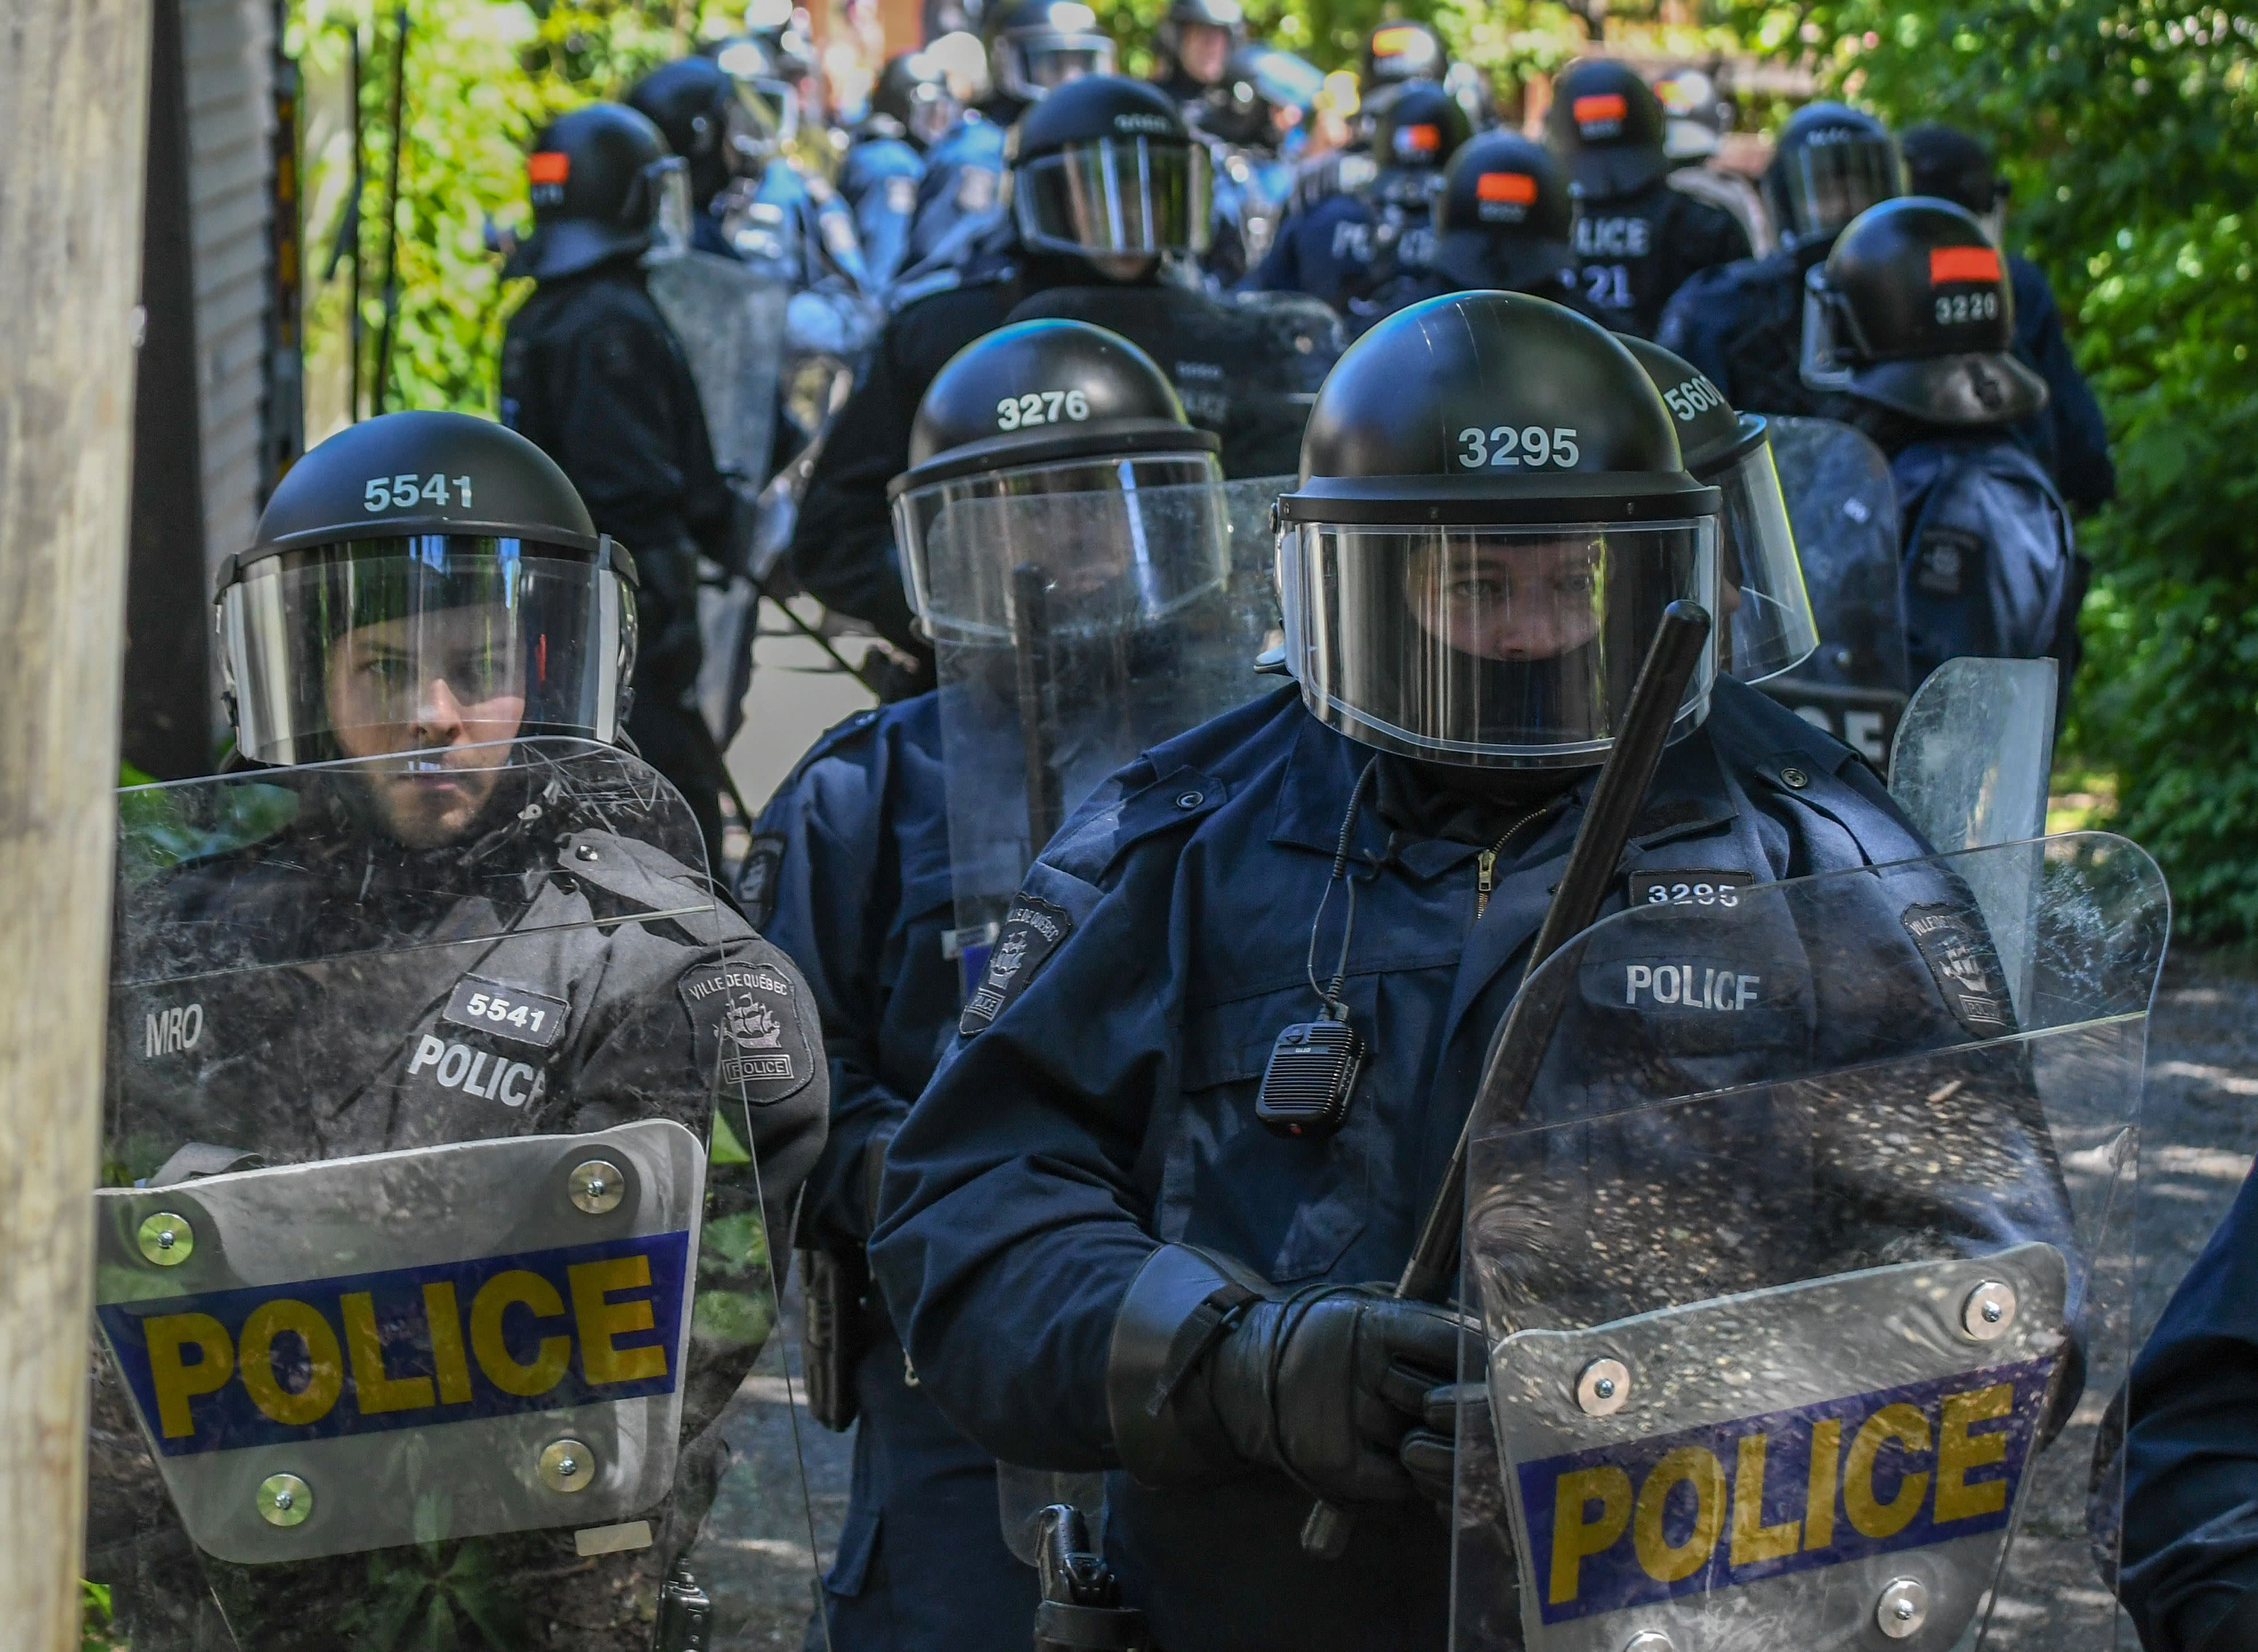 <p>Police block an alley during a demonstration in Quebec City on June 8, 2018, as the G7 Summits gets underway. (Photo: Martin Ouellet-Diotte/AFP/Getty Images) </p>